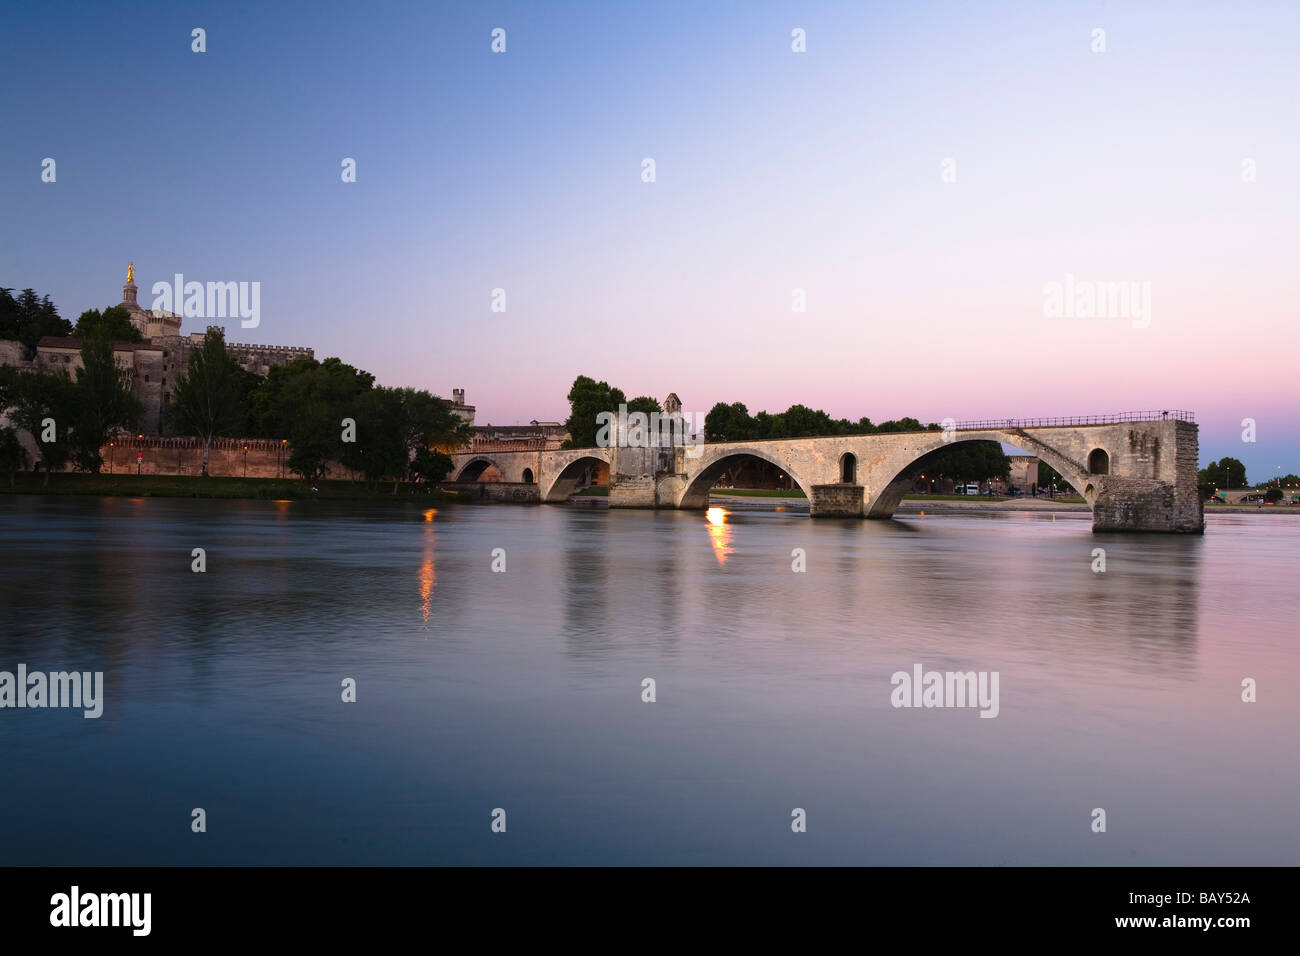 View at the bridge St. Benezet at sunset, Avignon, Vaucluse, Provence, France - Stock Image